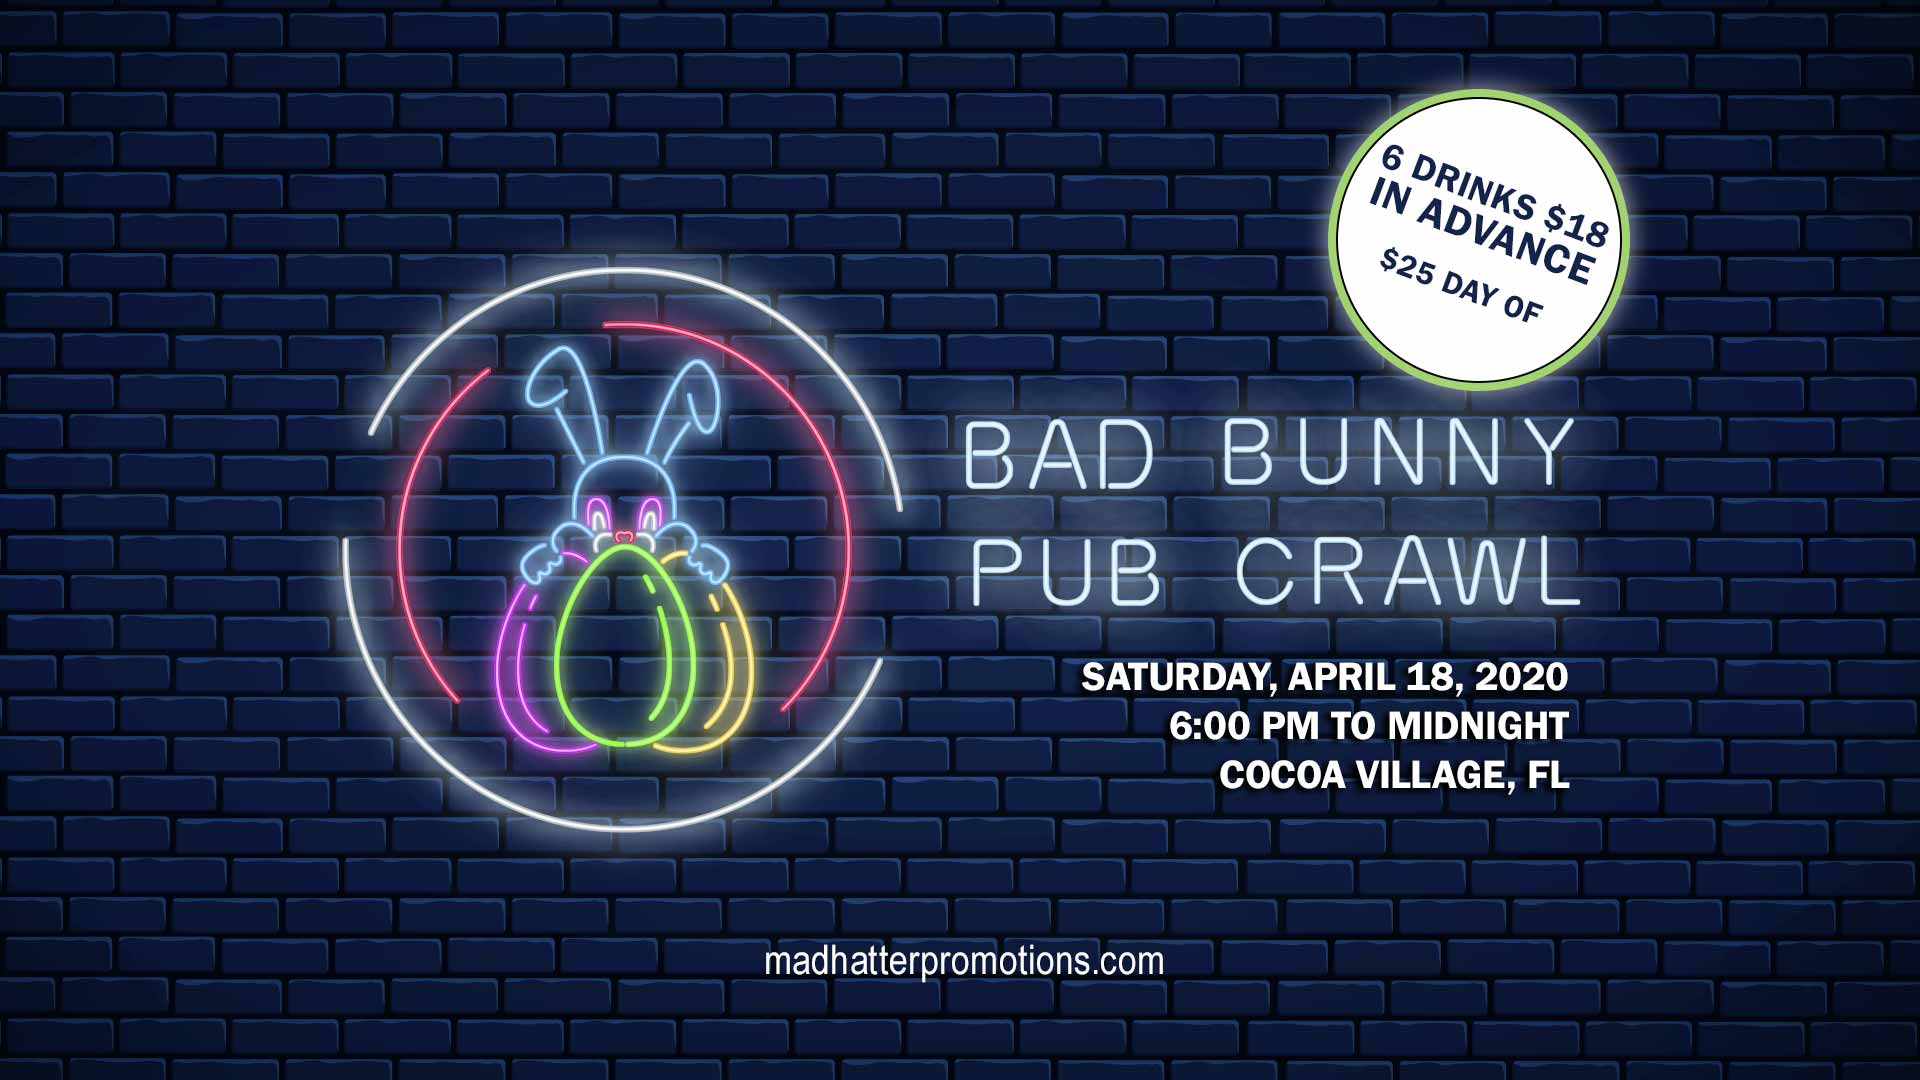 2020 Bad Bunny Easter Pub Crawl Cocoa Village Saturday April 18 6:00pm to Midnight